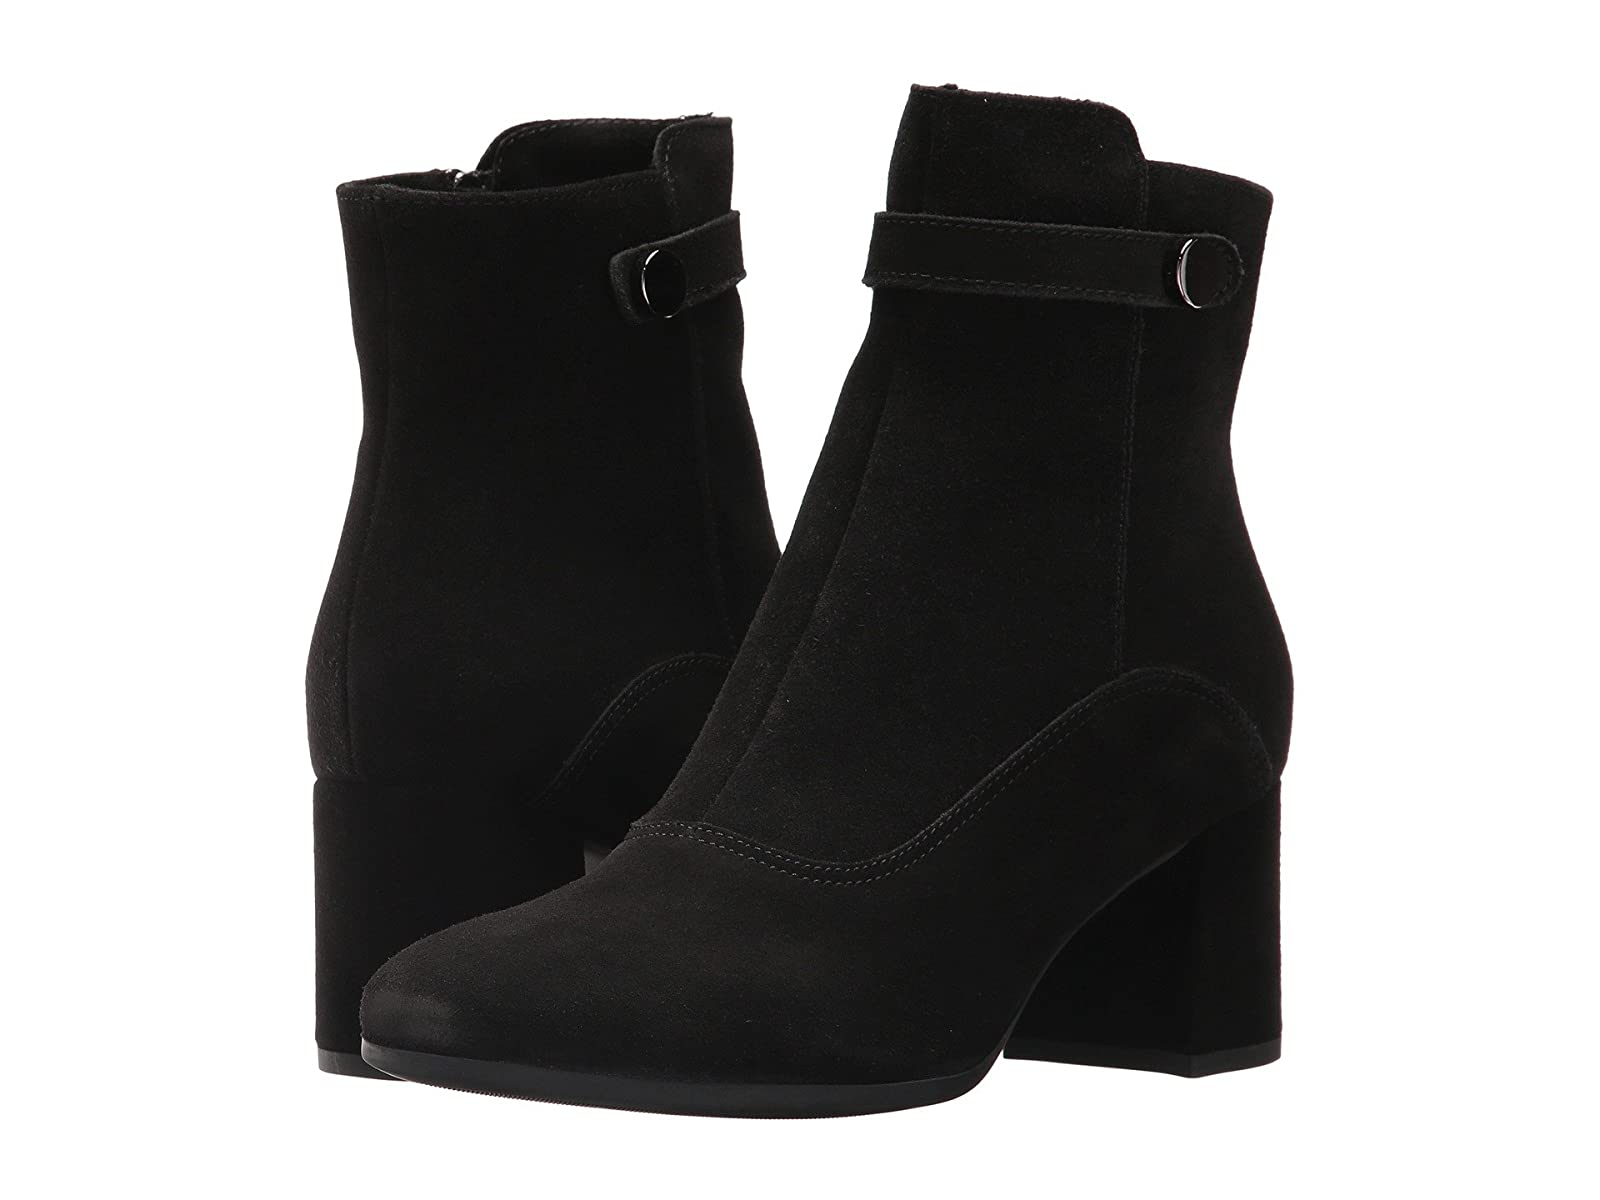 La Canadienne JessaAffordable and distinctive shoes